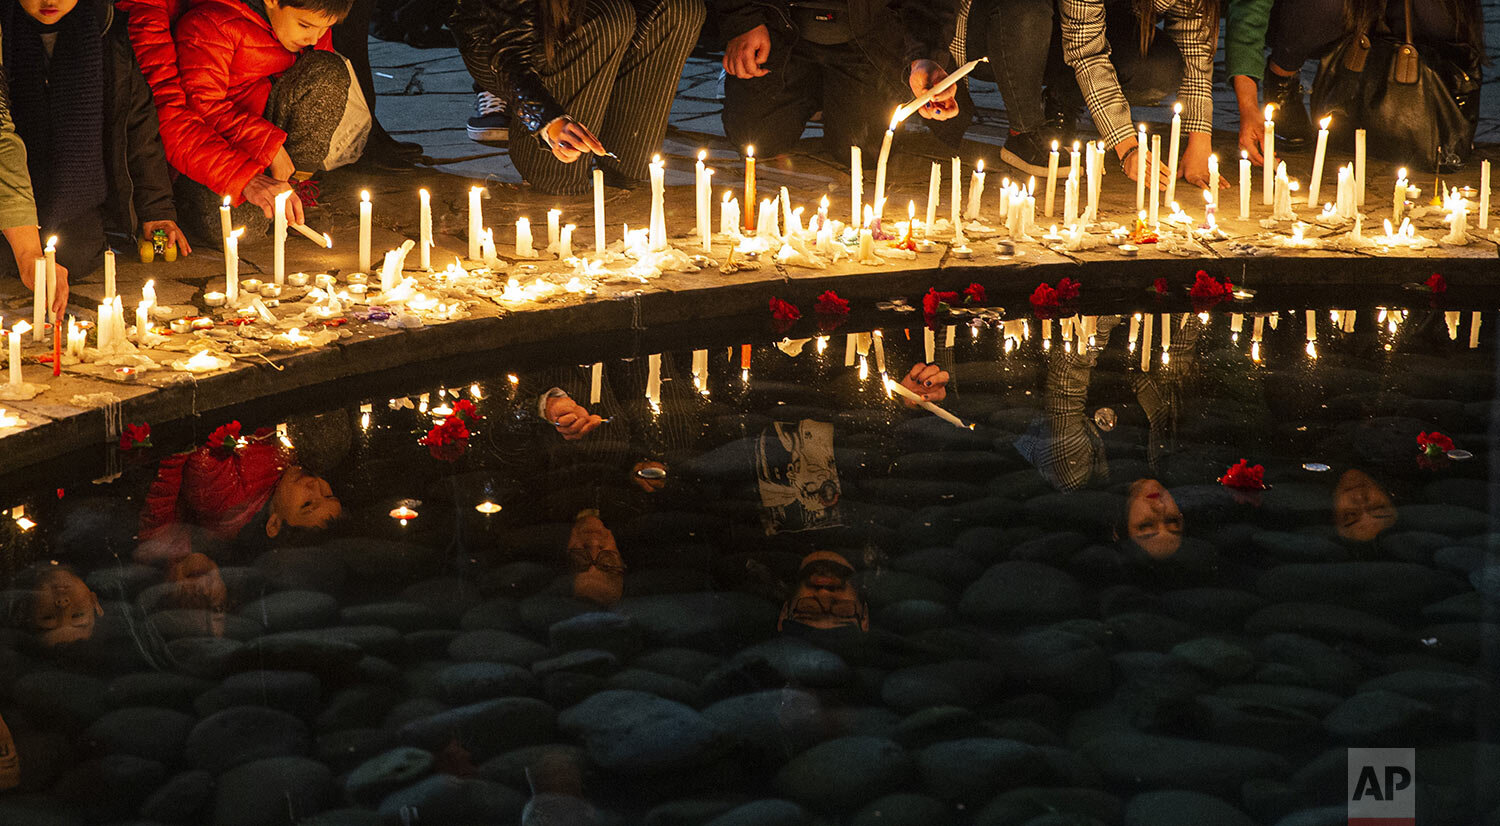 People light candles at the National Stadium during a vigil marking the anniversary of the 1973 military coup that ousted the late President Salvador Allende, in Santiago, Chile, Wednesday, Sept. 11, 2019. The stadium was used as a detention center in the early years of the dictatorship. (AP Photo/Esteban Felix)